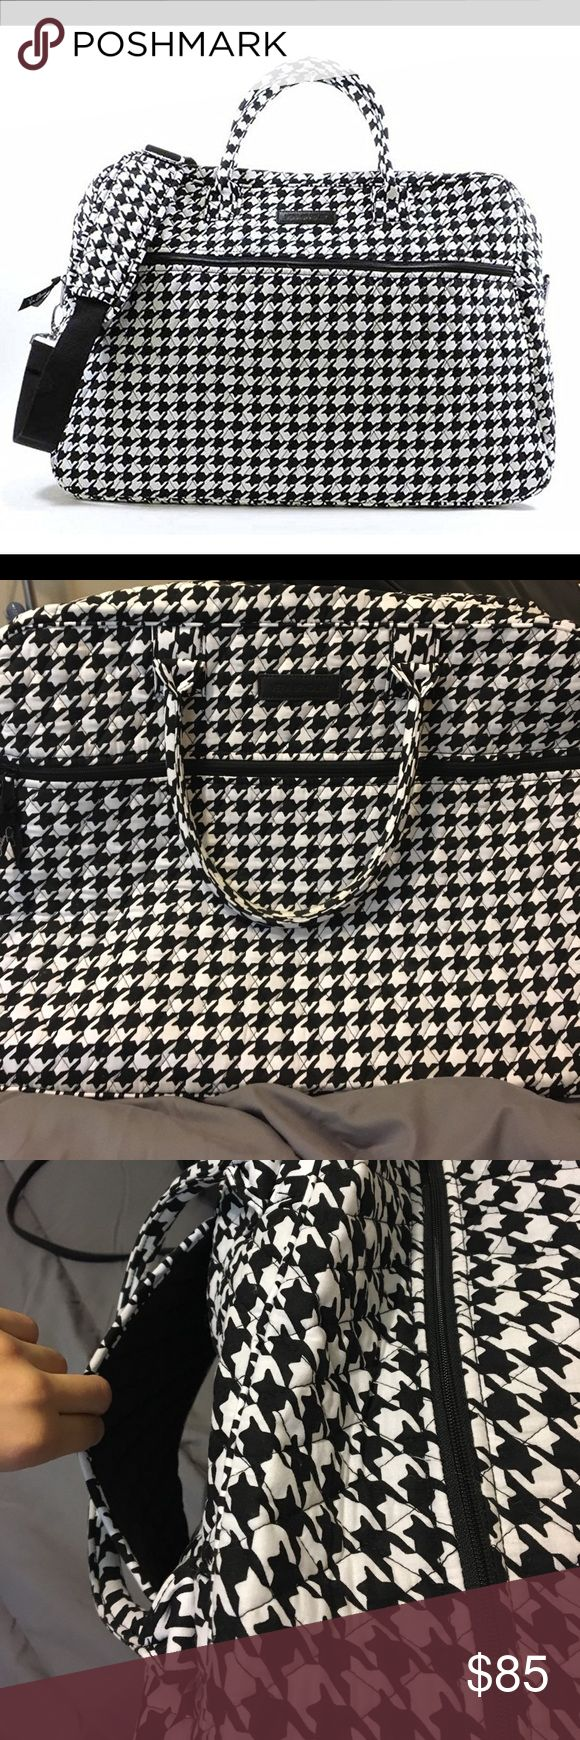 Vera Bradley Grand Traveler- Midnight Houndstooth Only used once, in perfect condition! TSA approved carry on bag. Has plenty of room for various items, with 4 large pockets on the inside of the bag, one zip up pocket on the front of the bag. The back of the bag has an opening which allows you to slide the bag over a rolling suitcase. Also features a detachable strap to carry over the shoulder. 85$ OBO Vera Bradley Bags Travel Bags